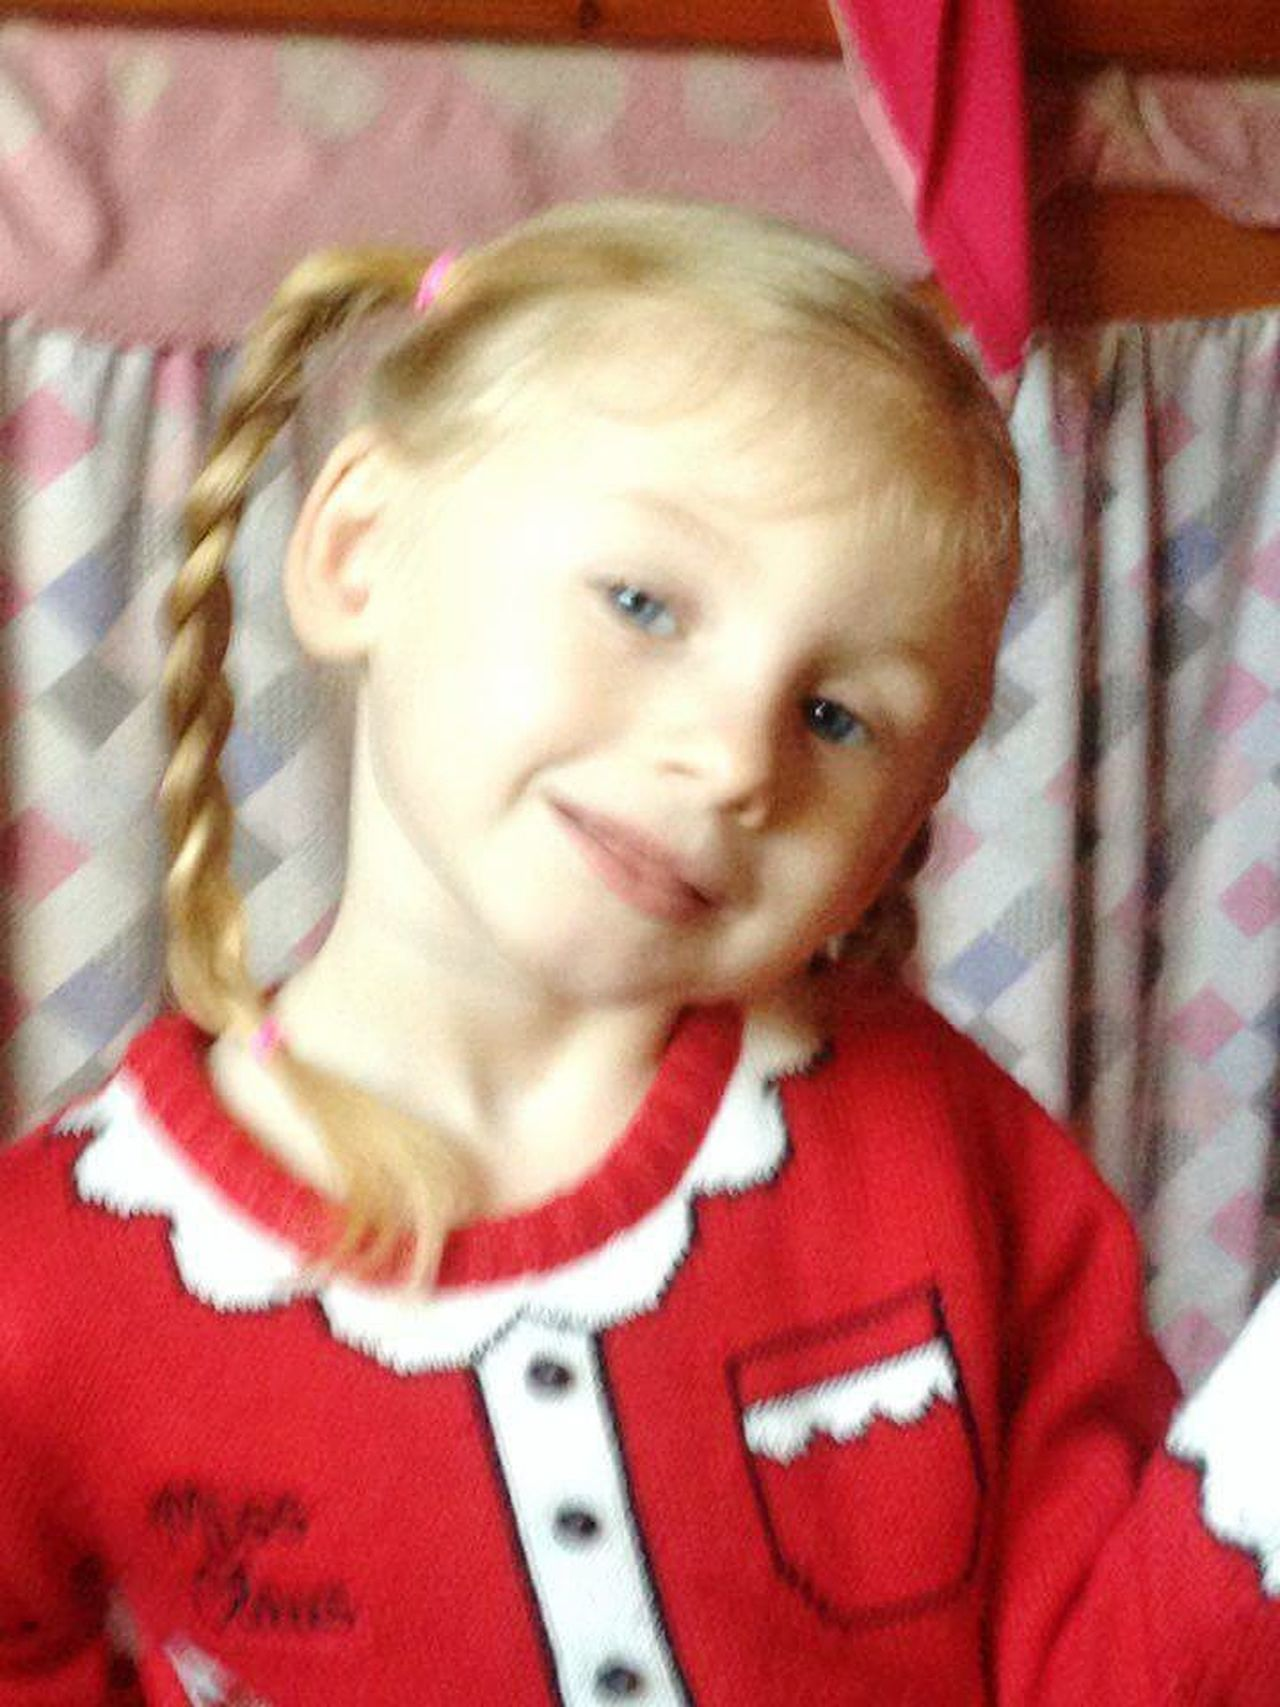 daughter at christmas Looking At Camera Child Blond Hair Smiling One Person Christmas Spirit Poser ❤ Age 3